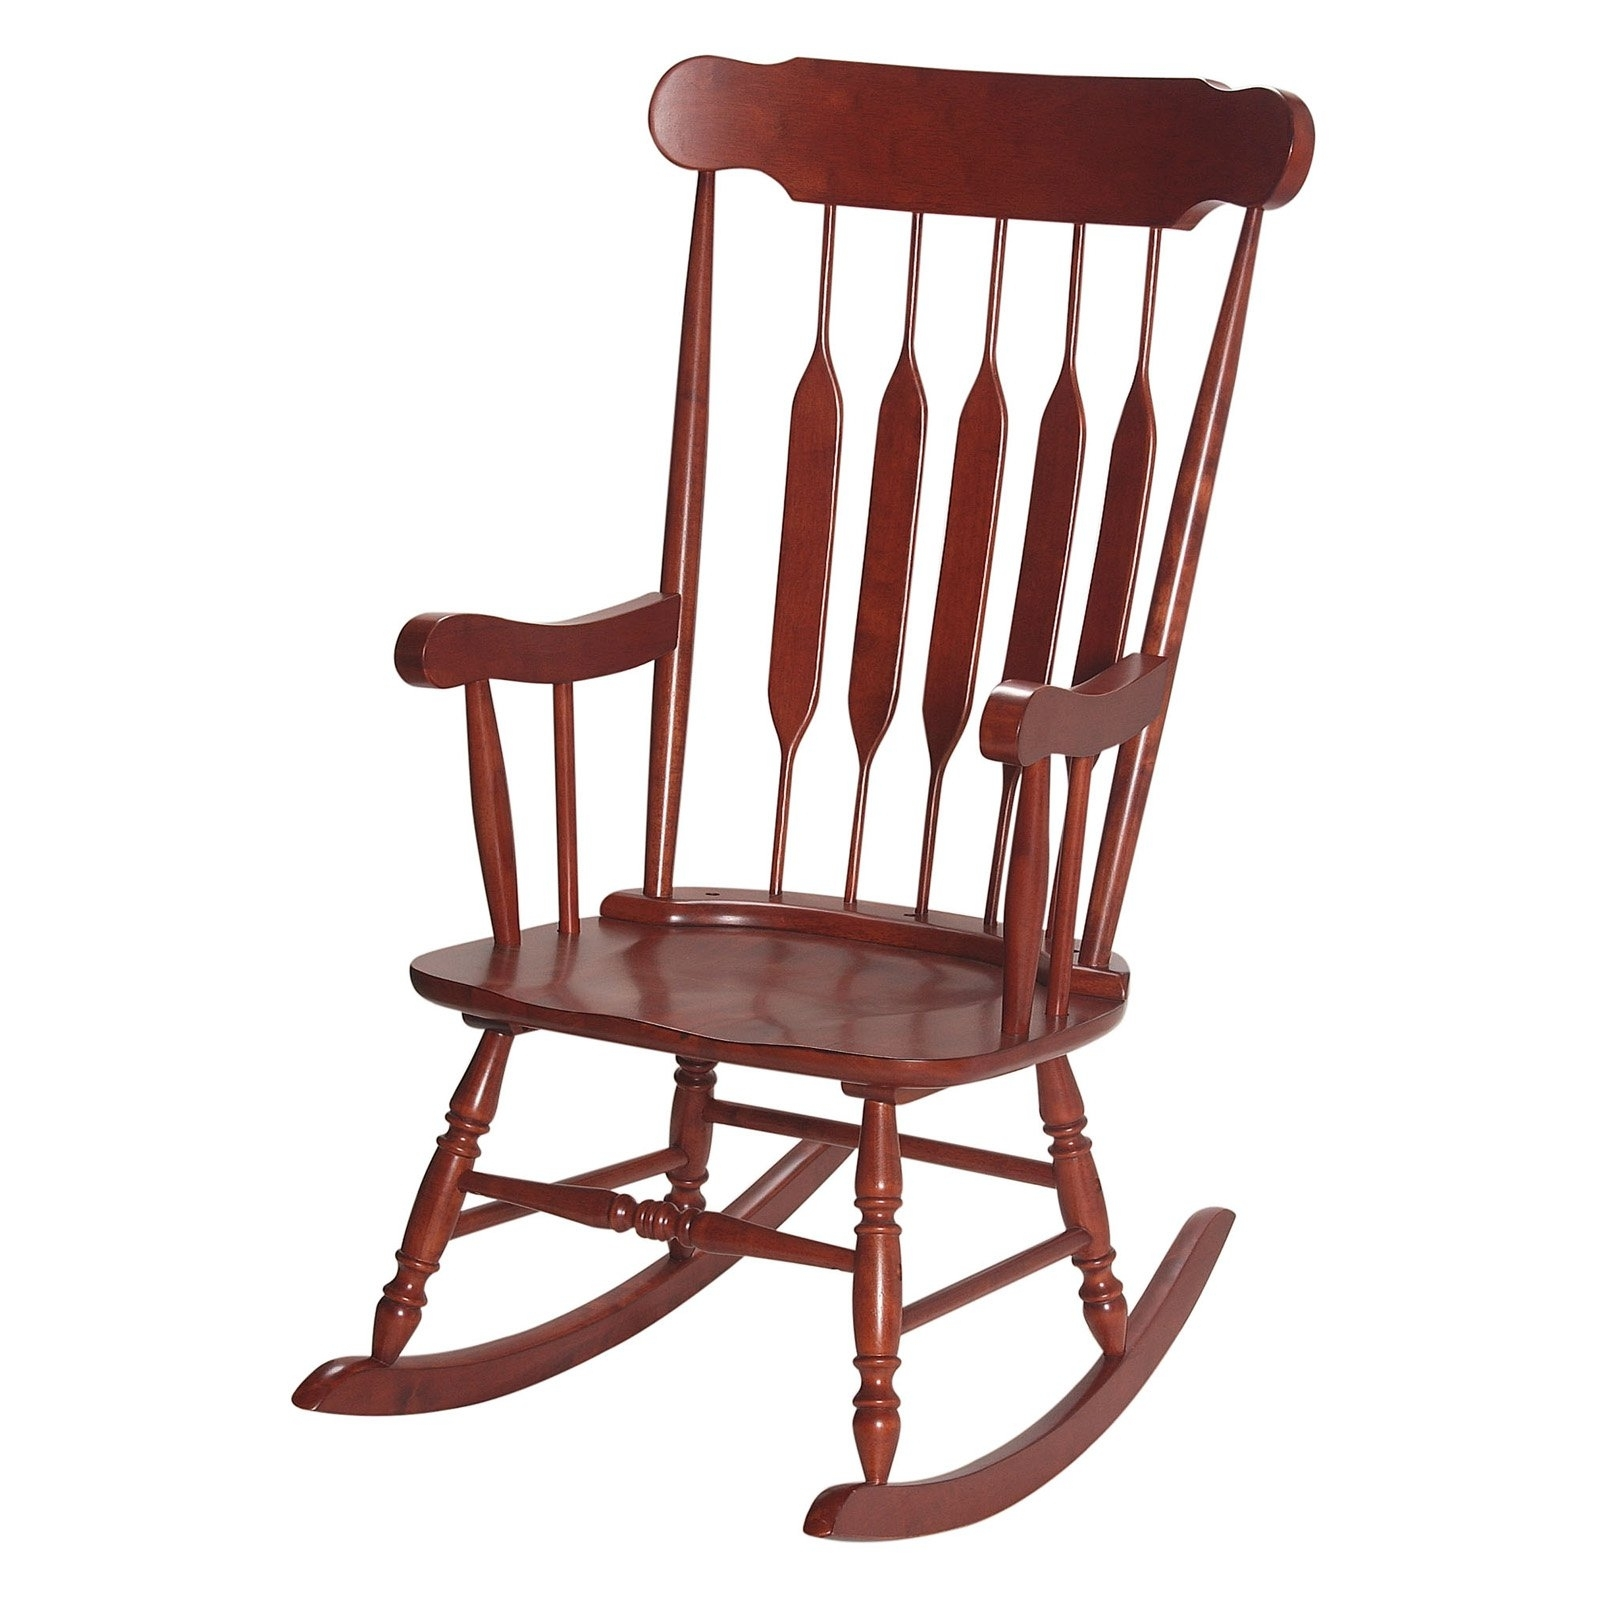 Rocking Chairs For Adults Within Recent Gift Mark Mission Style Wooden Rocking Chair With Upholstered Seat (View 3 of 20)